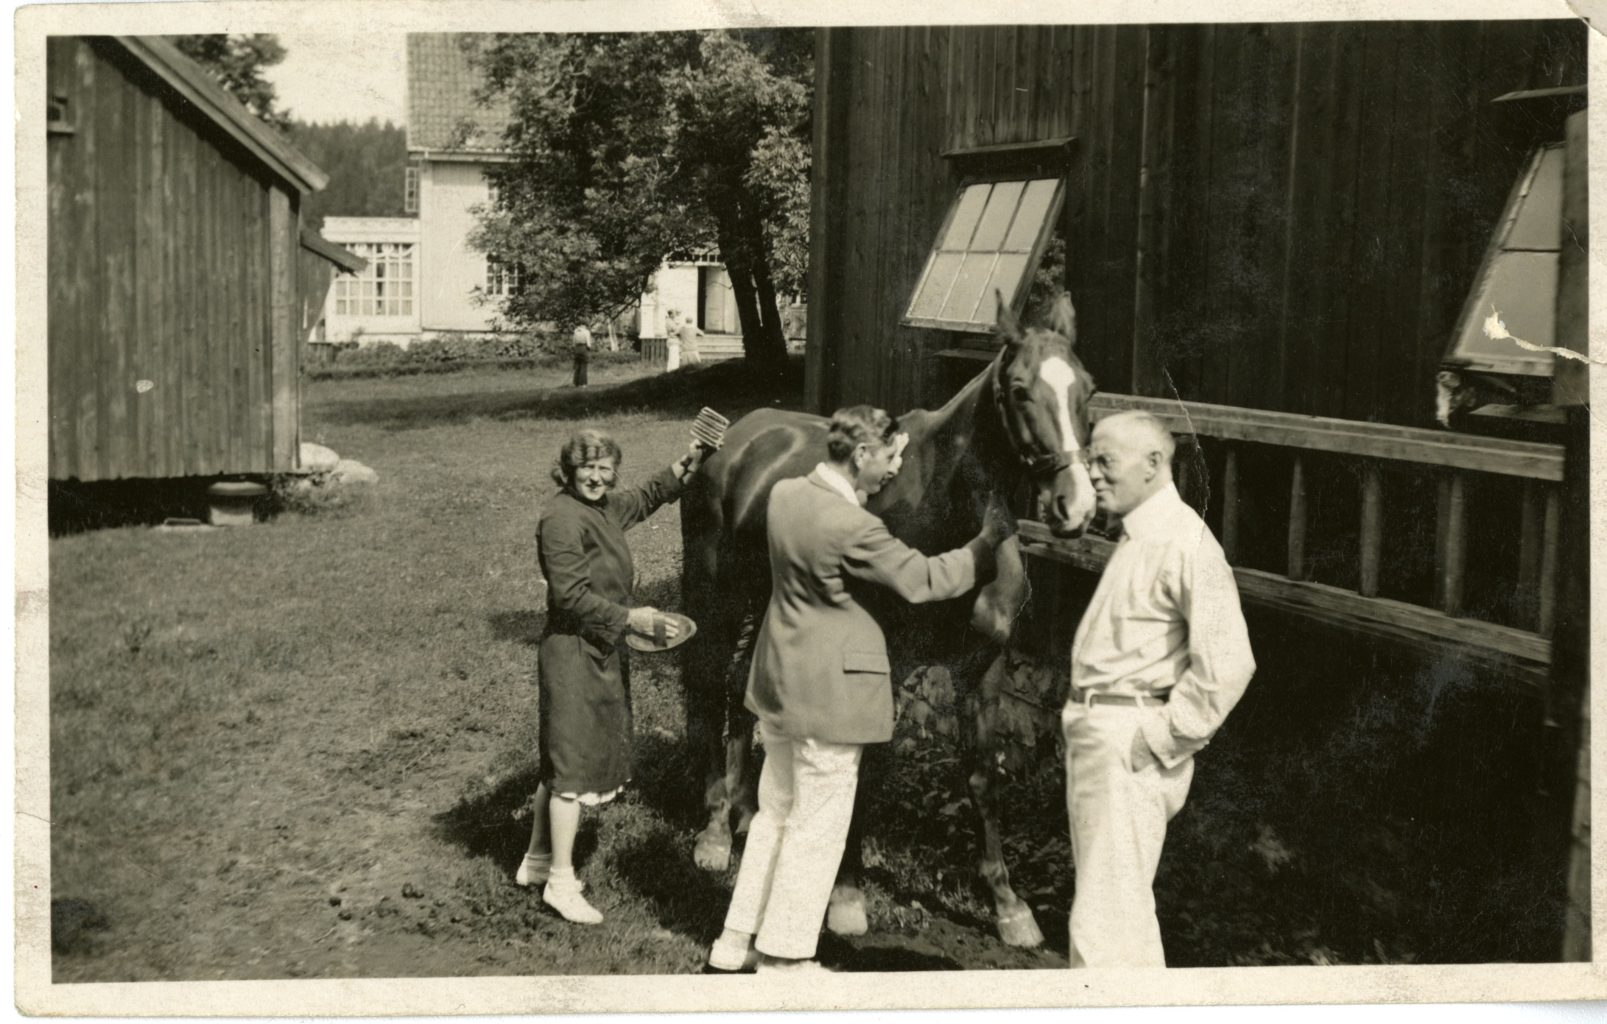 Man and woman groom horse on homestead. One man stand to the right.